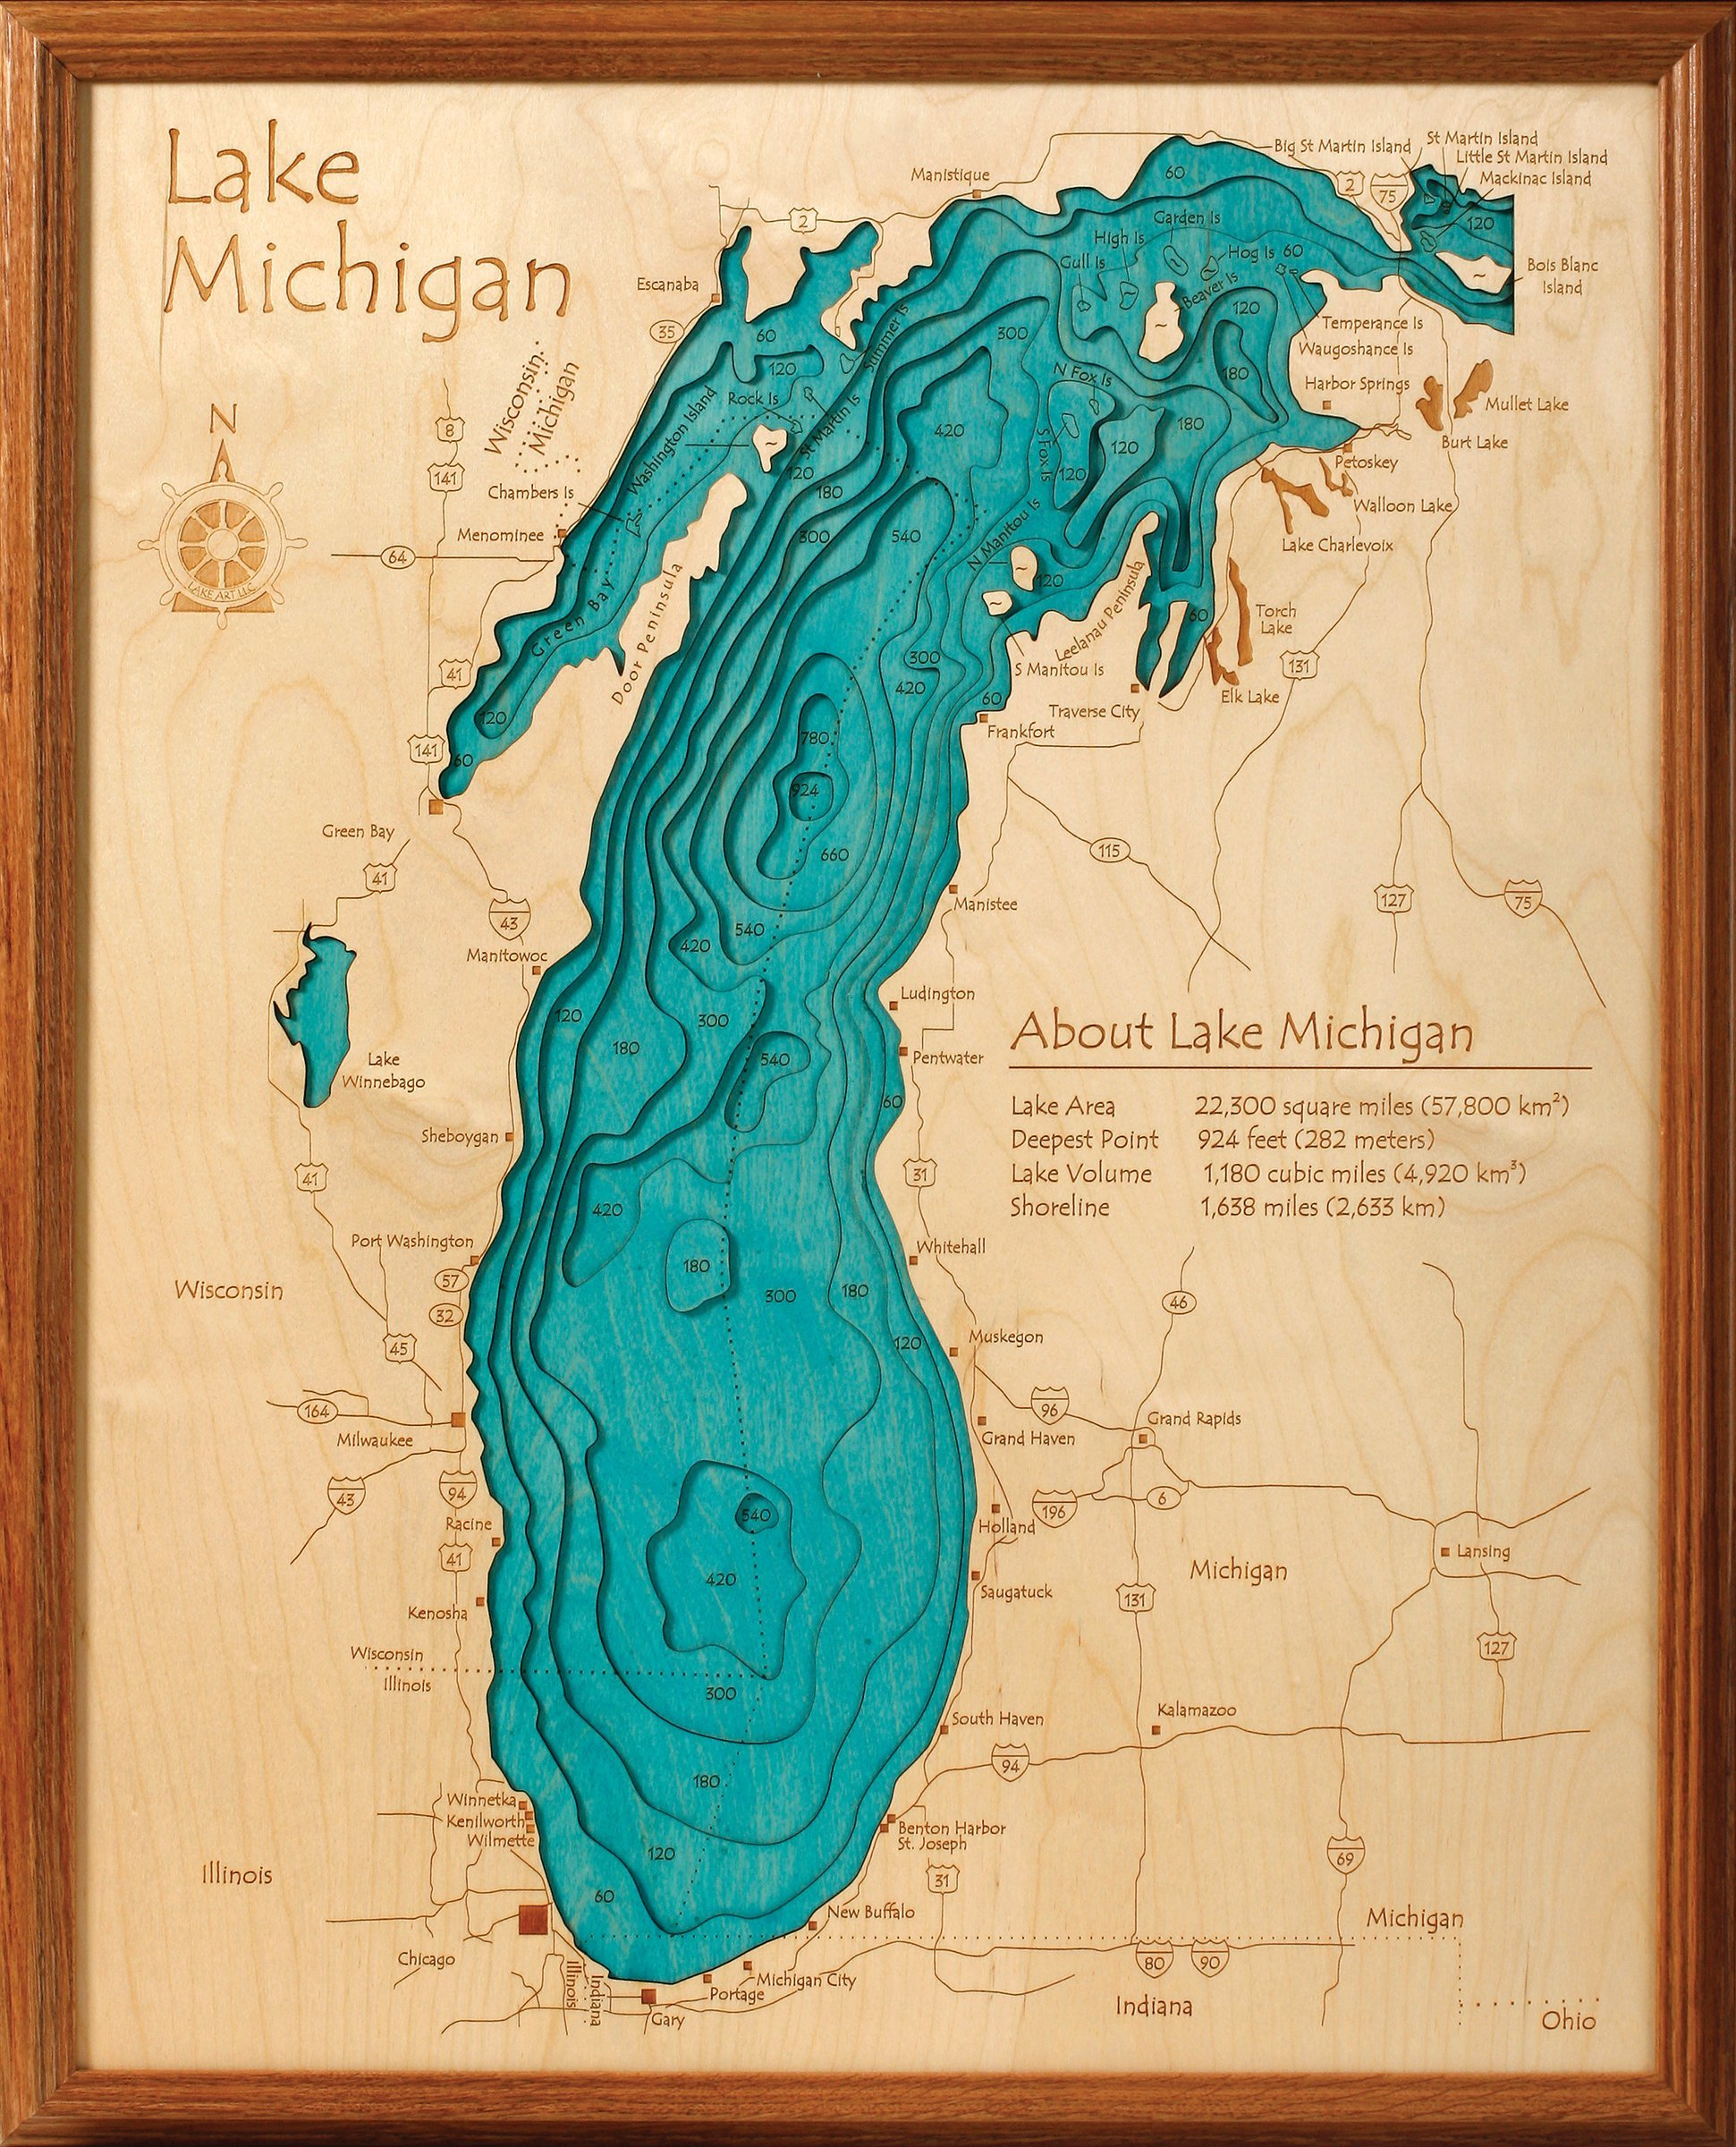 Lauderdale Lakes (Green, Middle and Mill Lakes) in Walworth, WI - 3D Map 16 x 20 IN - Laser carved wood nautical chart and topographic depth map. by Long Lake Lifestyle